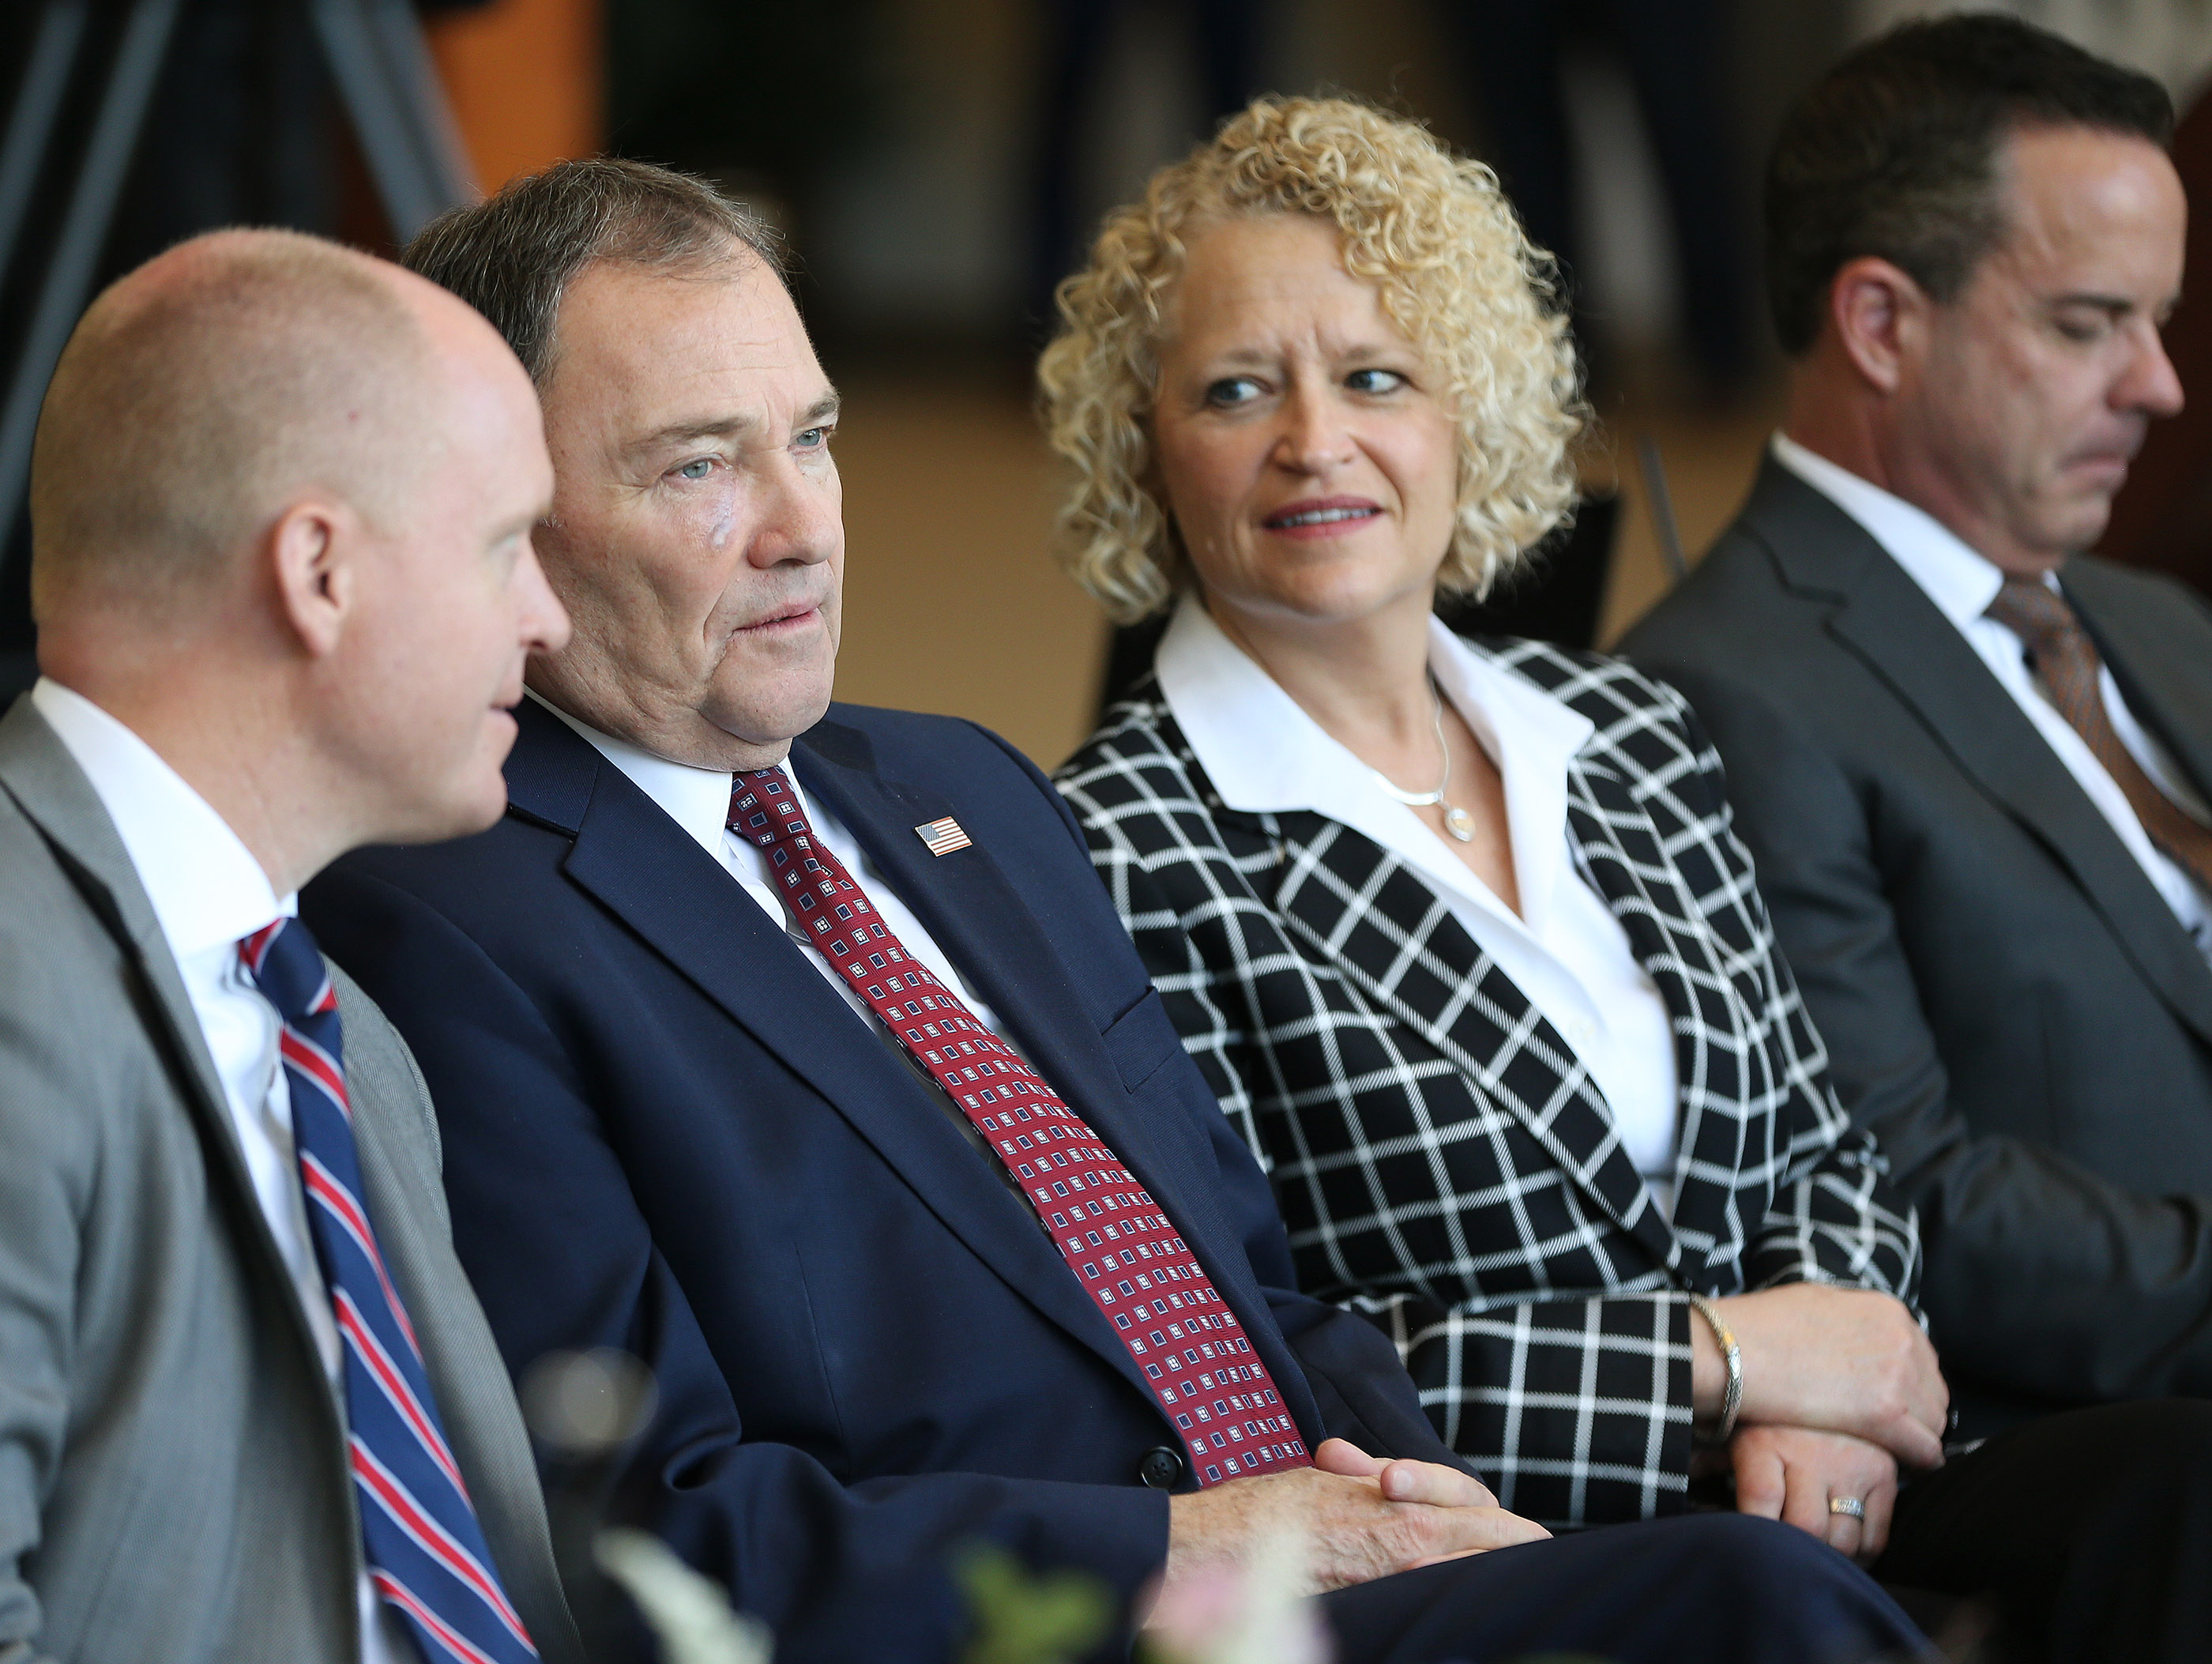 Gov. Gary Herbert and Salt Lake City Mayor Jackie Biskupski sit in a press conference as leadership of The Church of Jesus Christ of Latter-day Saints announce renovation plans for the Salt Lake Temple and changes to the temple grounds and Temple Square at a press conference in Salt Lake City on Friday, April 19, 2019.